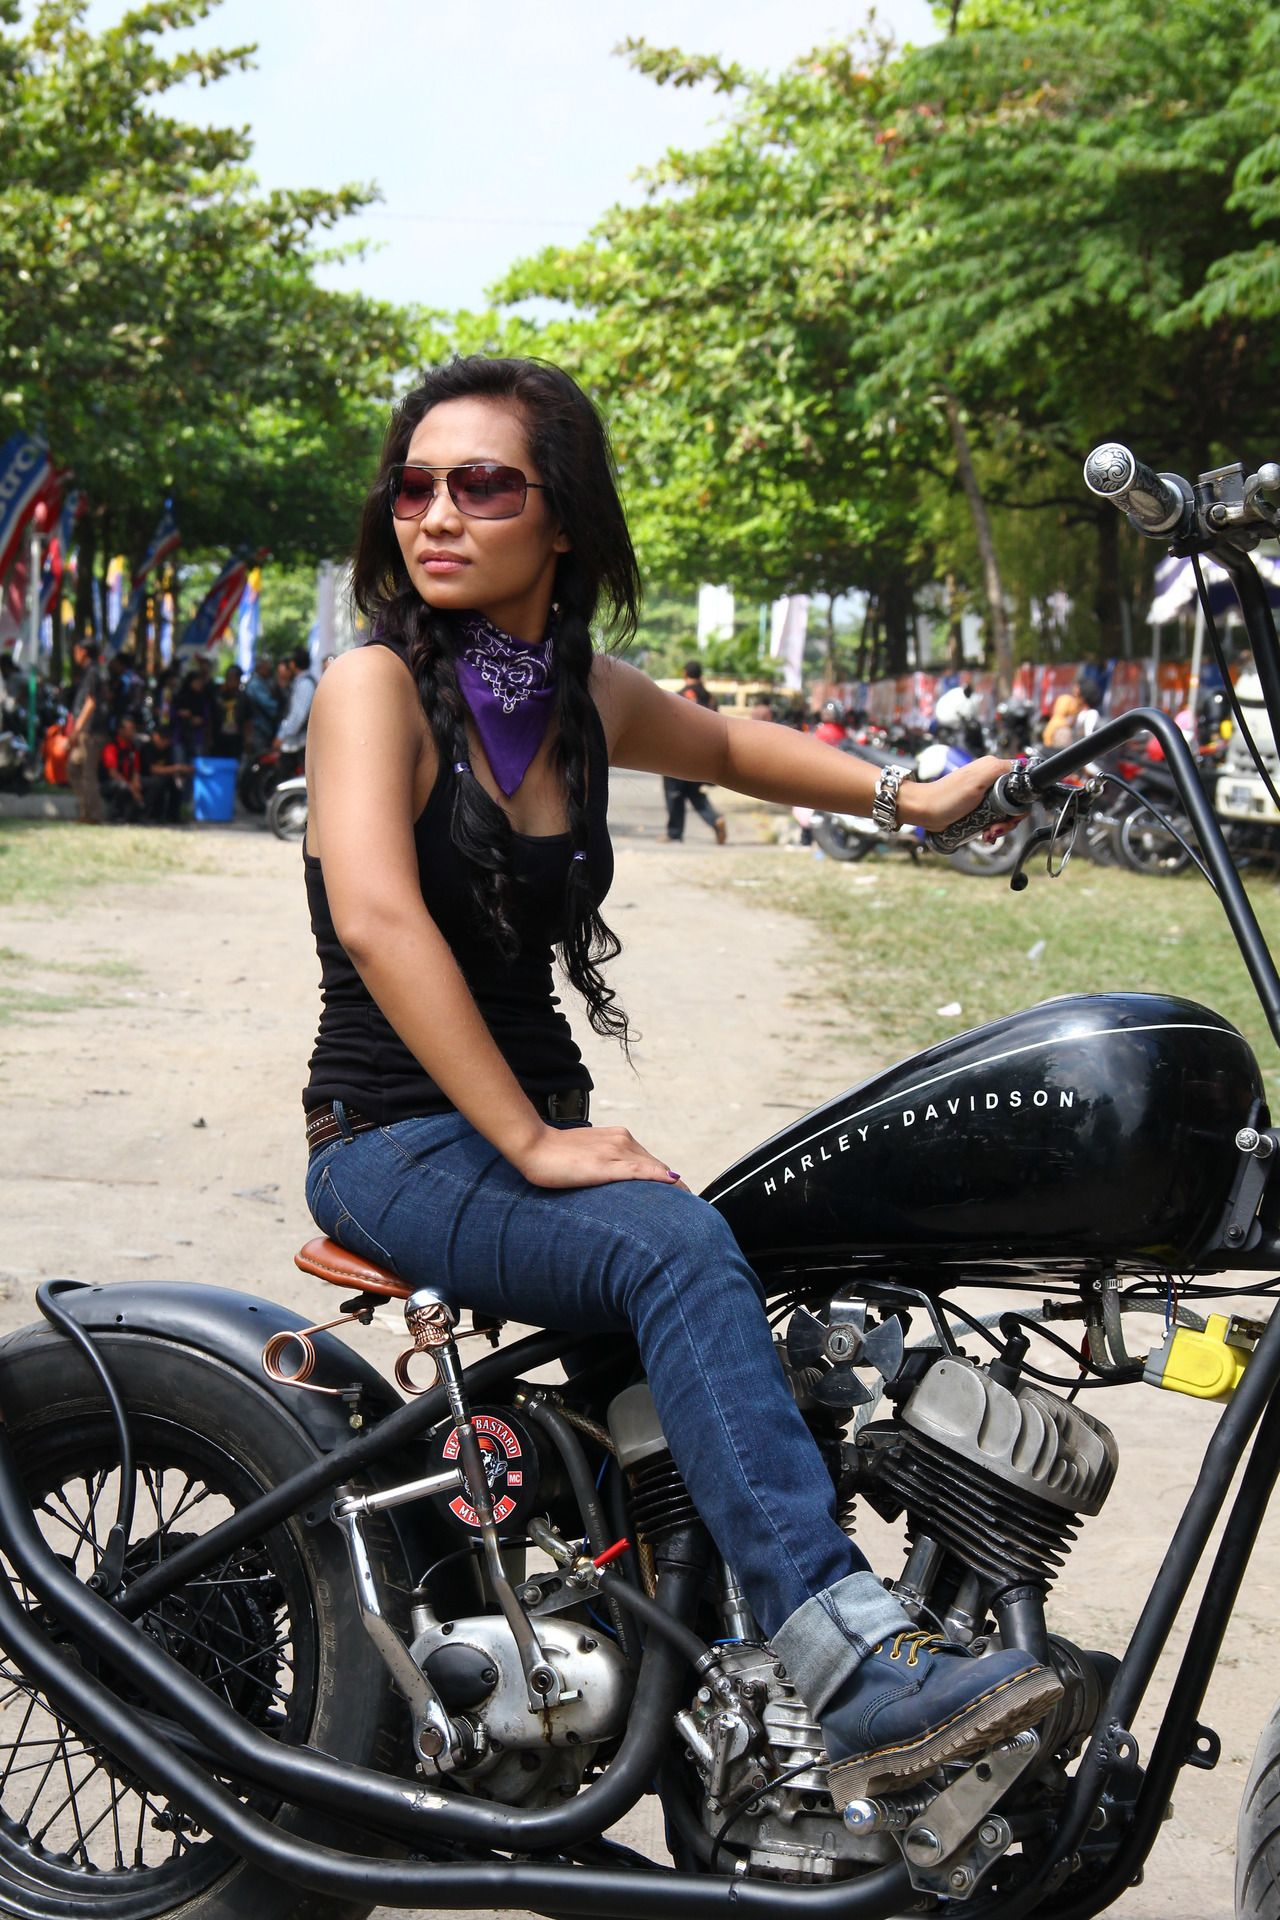 Motolady from Bandung, west-java Indonesia. Rides a Harley Davidson WLC 1948 chopper. (Submission from Daniel)